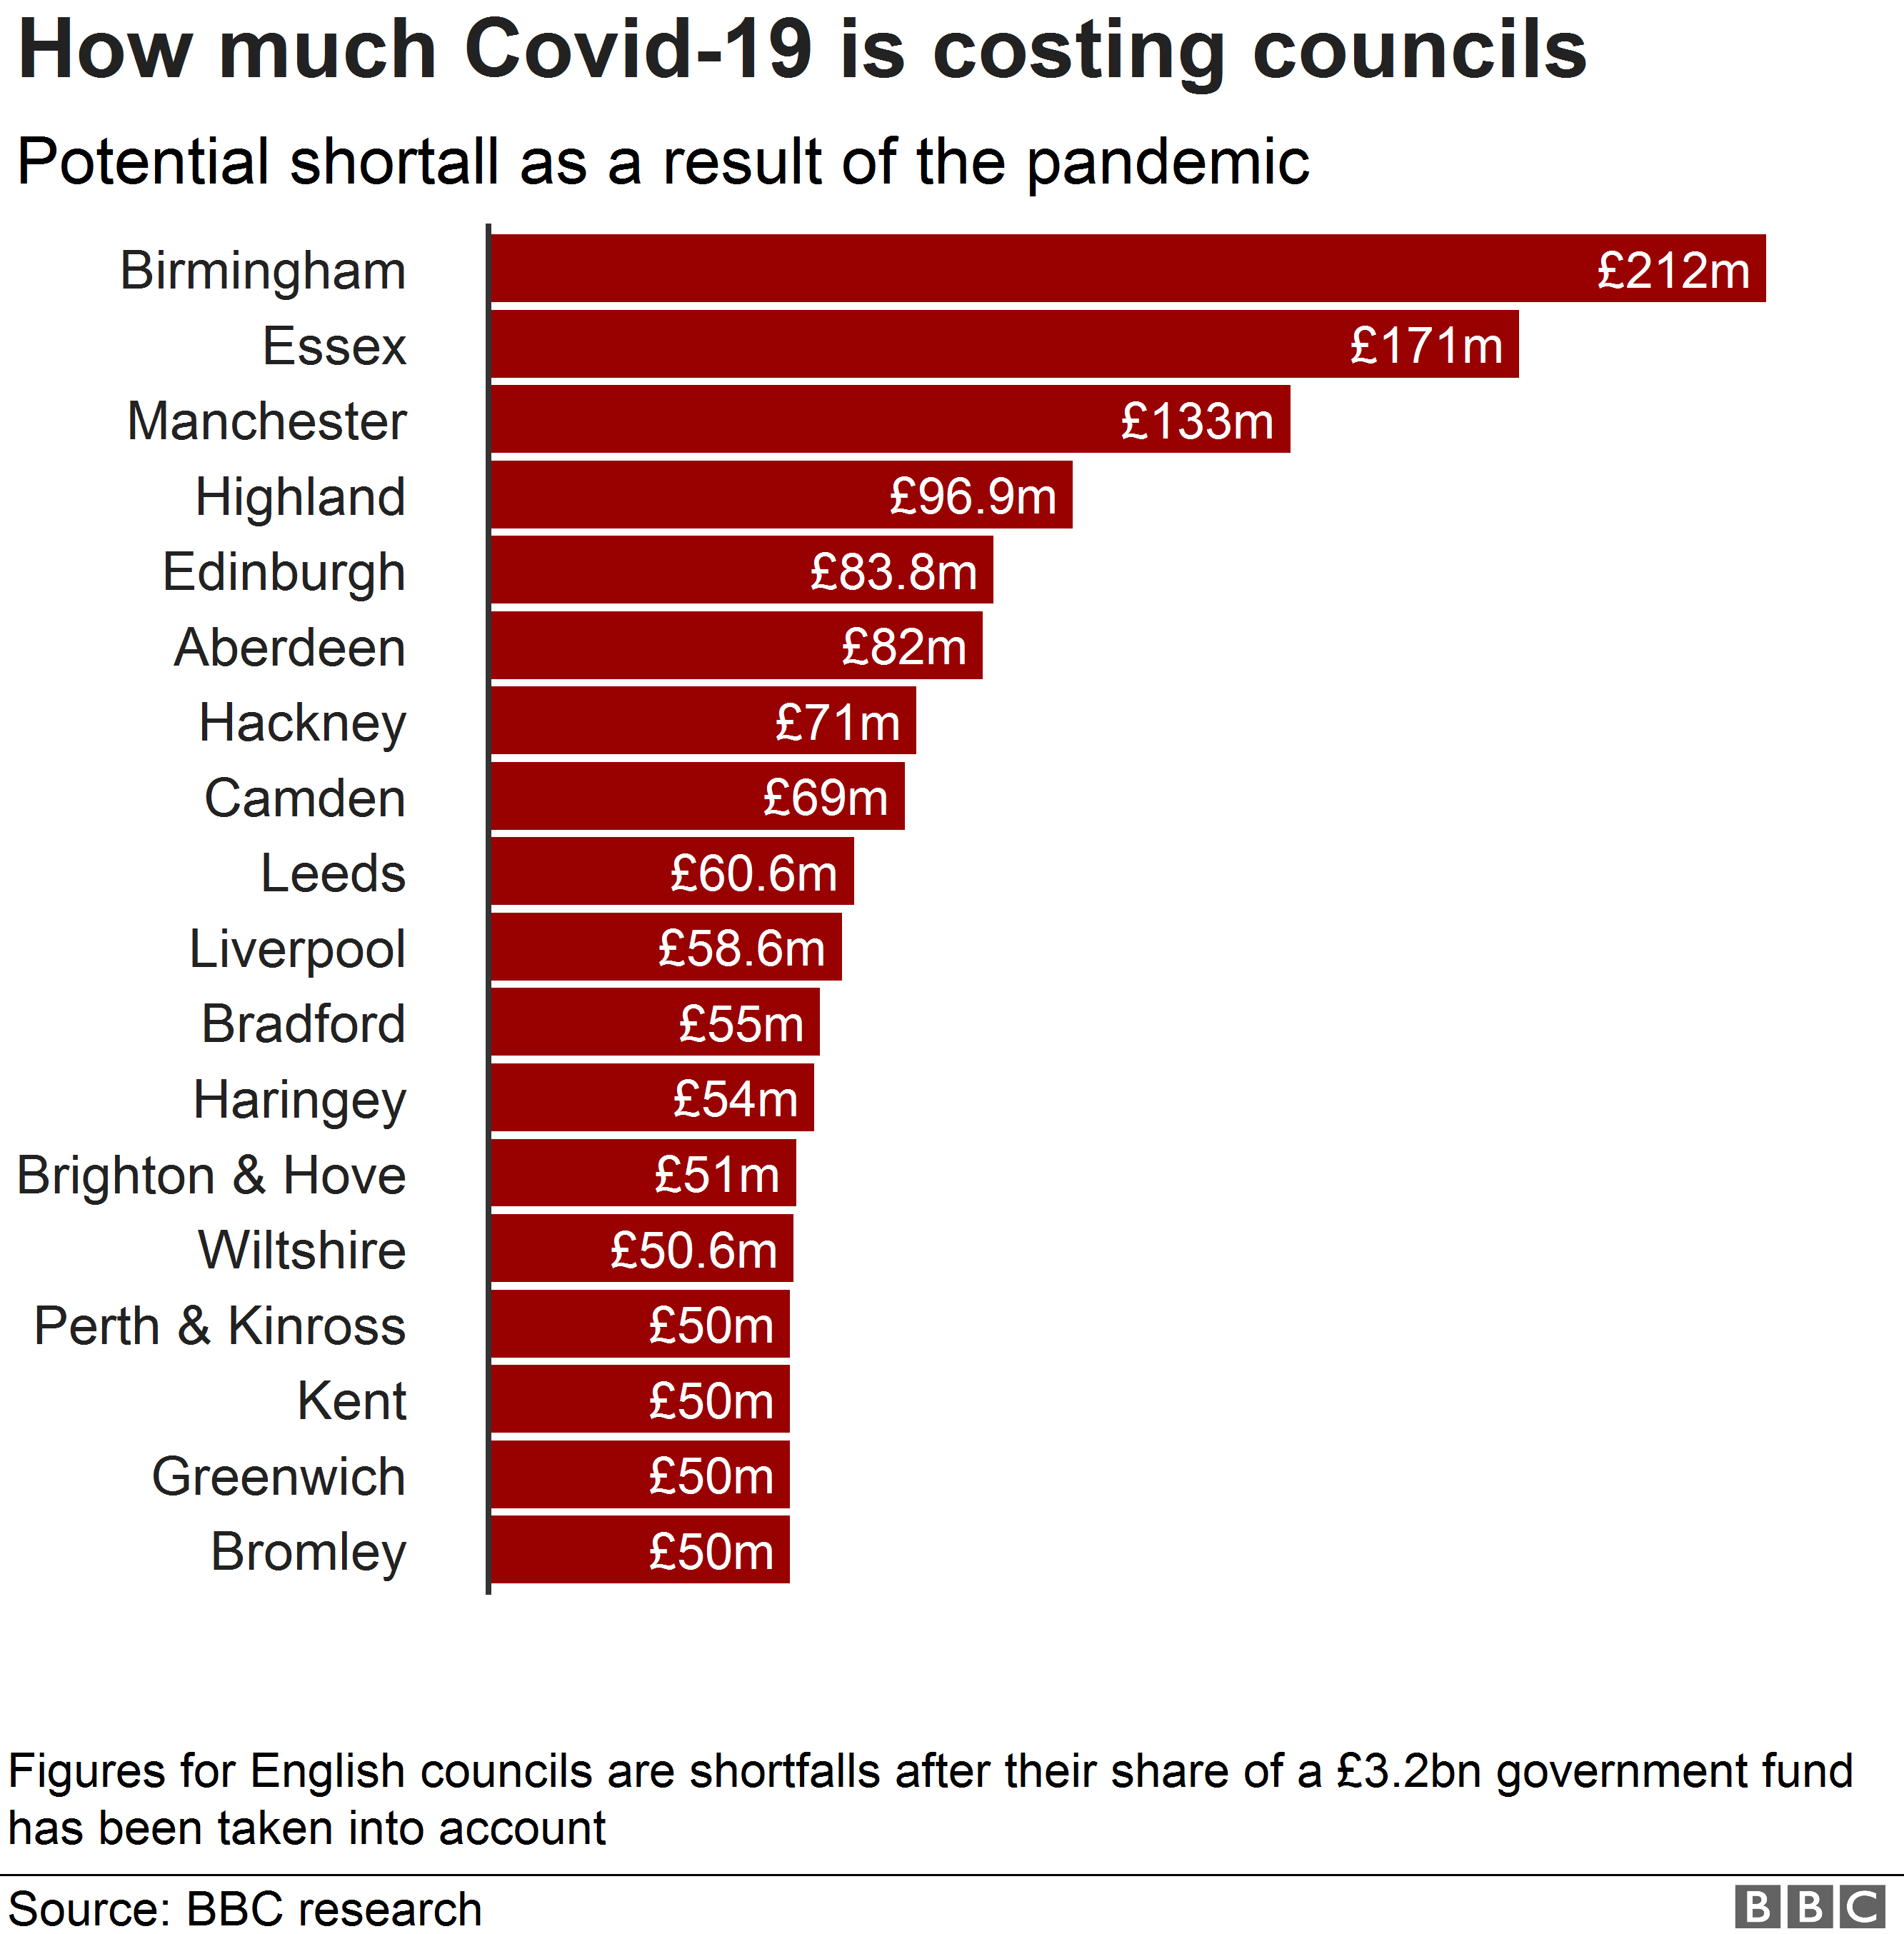 Chart showing councils with potential shortfalls of over £50m as a result of Covid-19